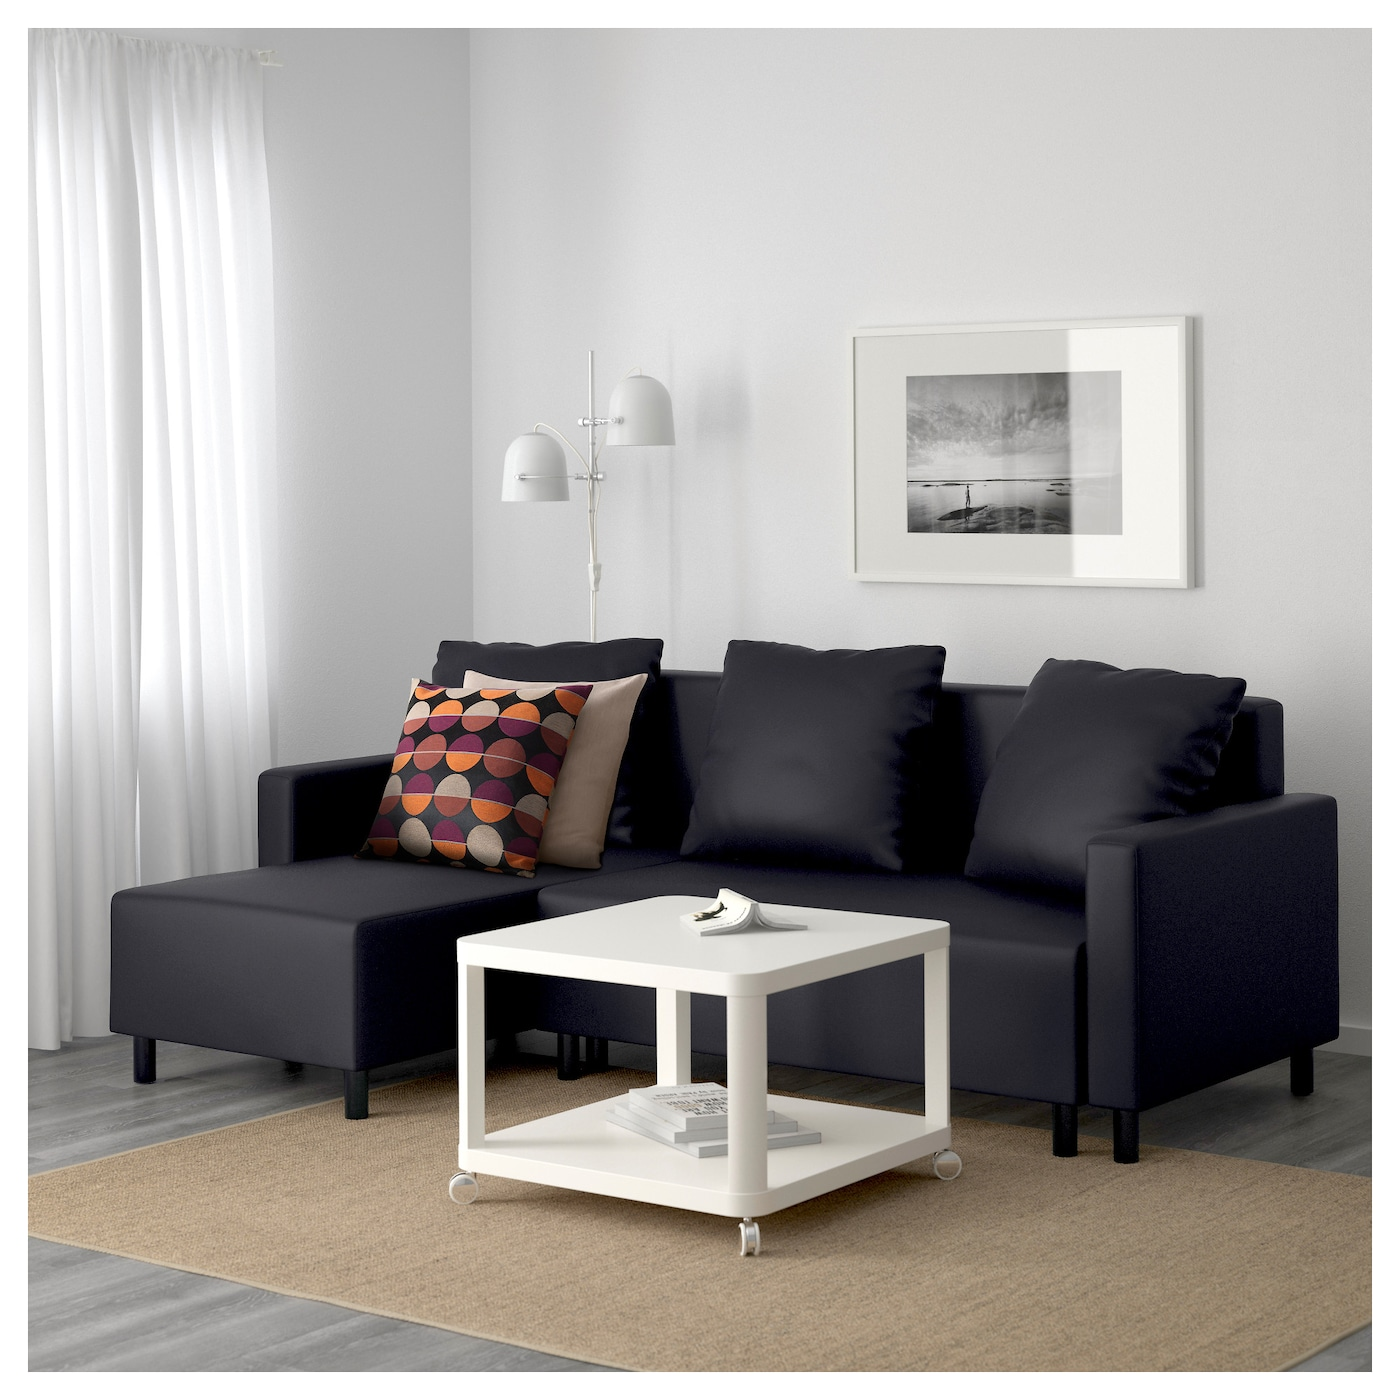 IKEA LUGNVIK sofa bed with chaise longue Sofa, chaise longue and double bed in one.